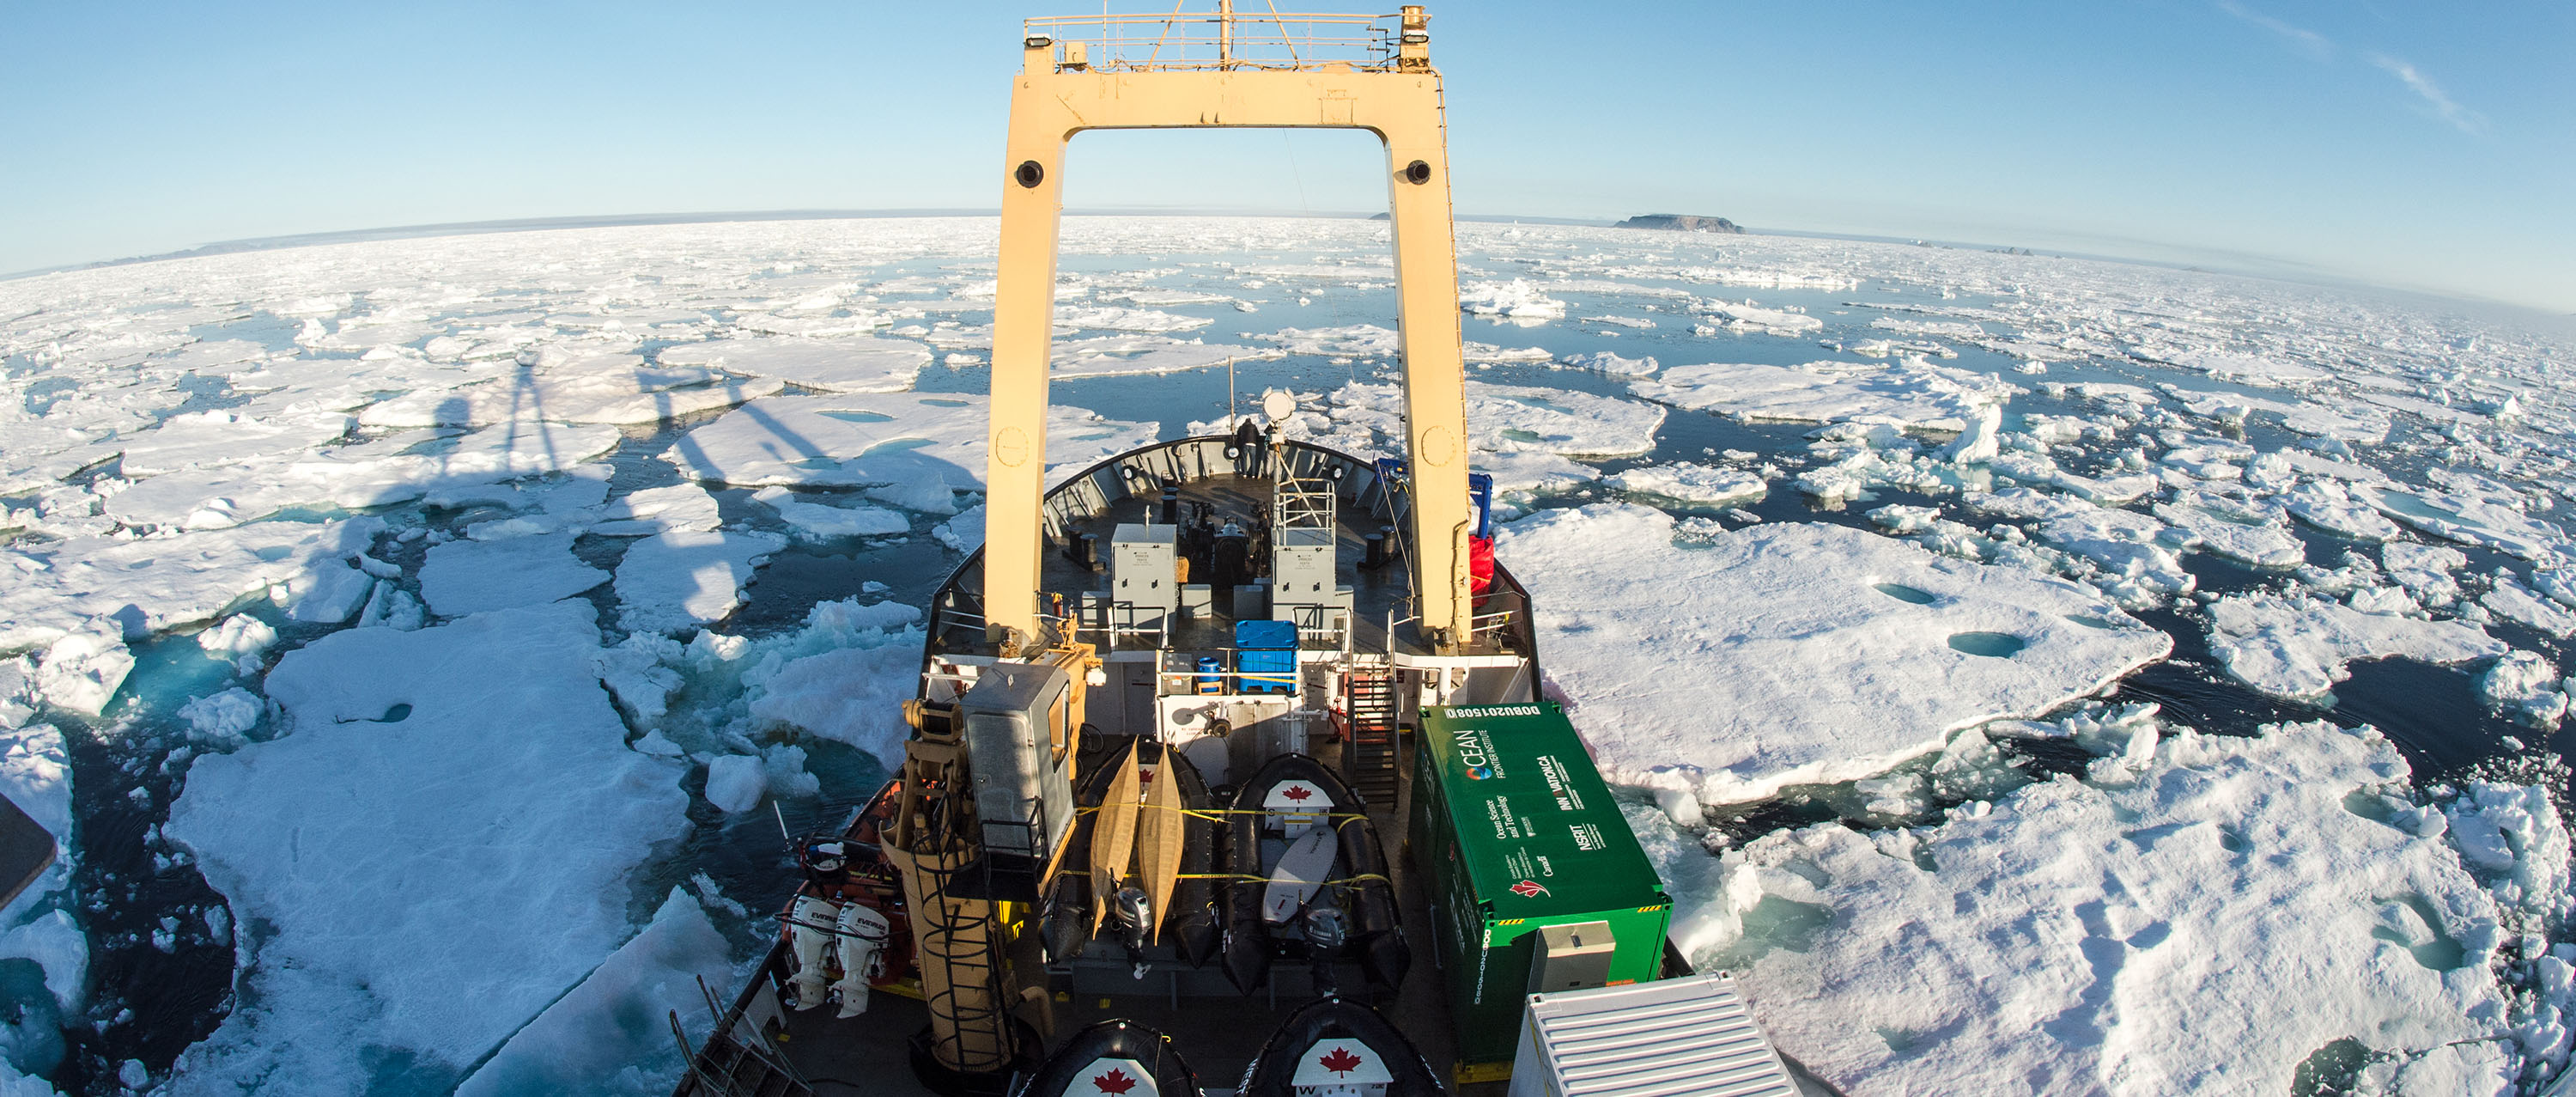 C3 ship in the Arctic. Photo credit: Mike Sudoma, Students on Ice Foundation